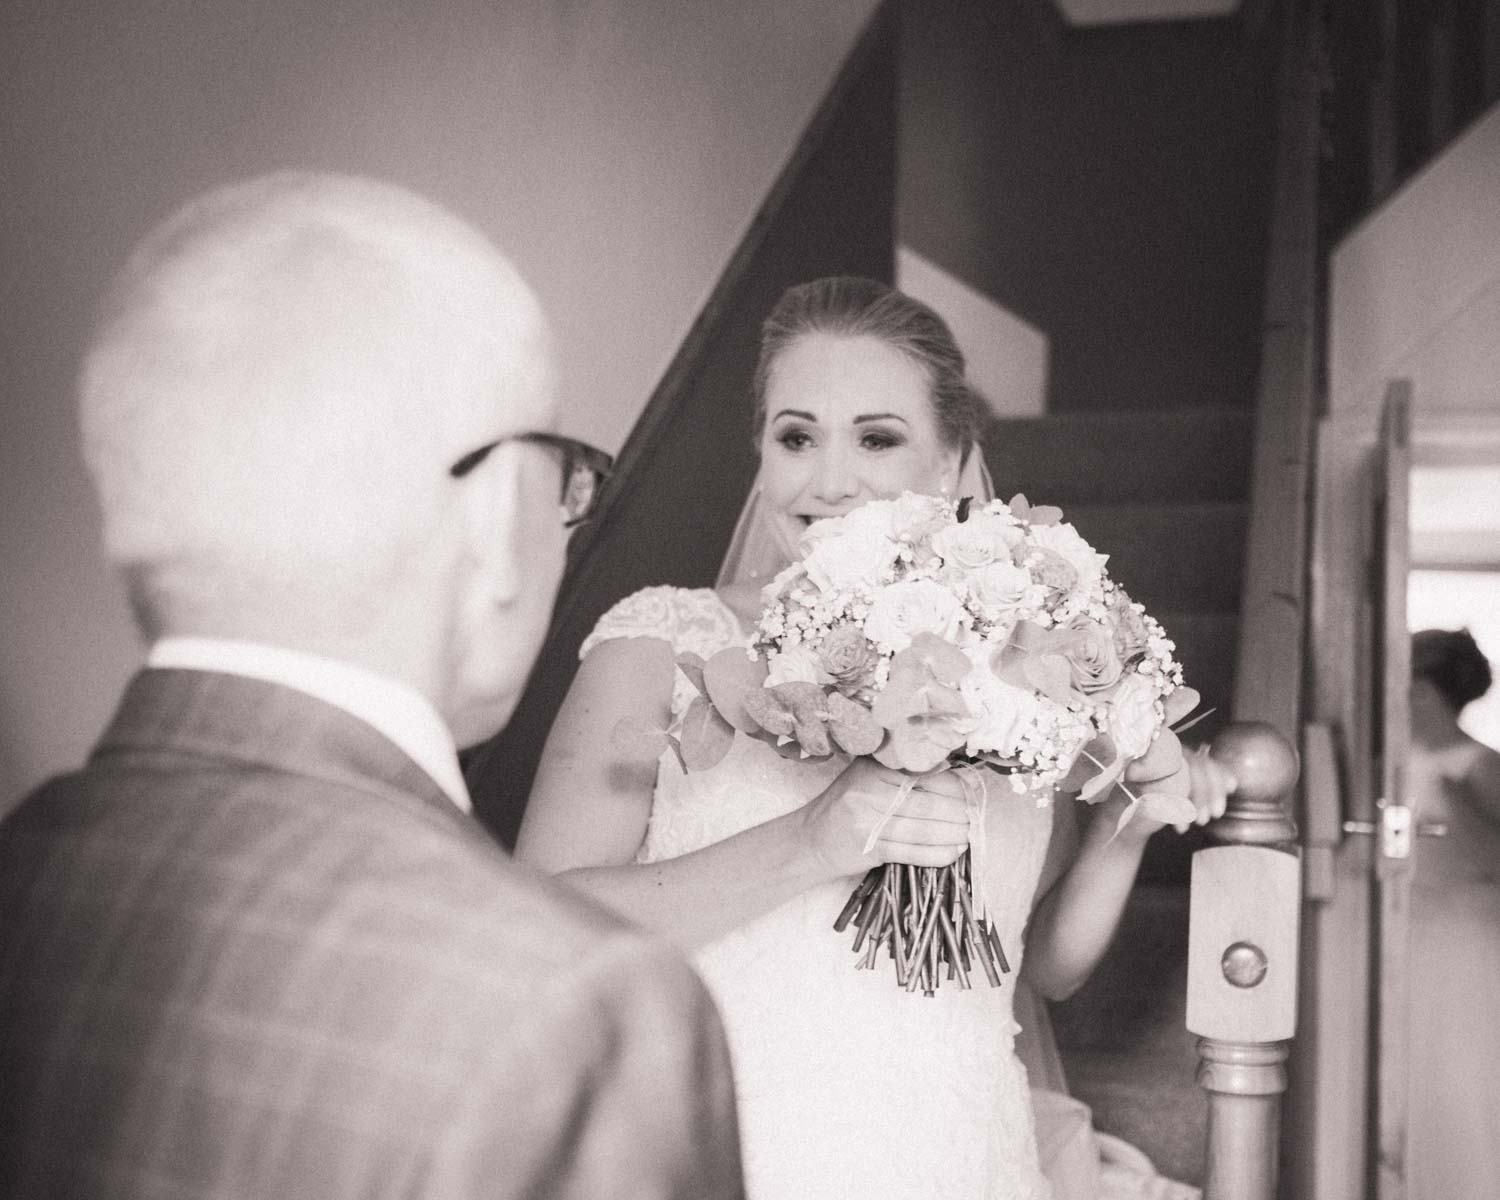 Young bride in wedding dress walks down stairs to father with tears in her eyes